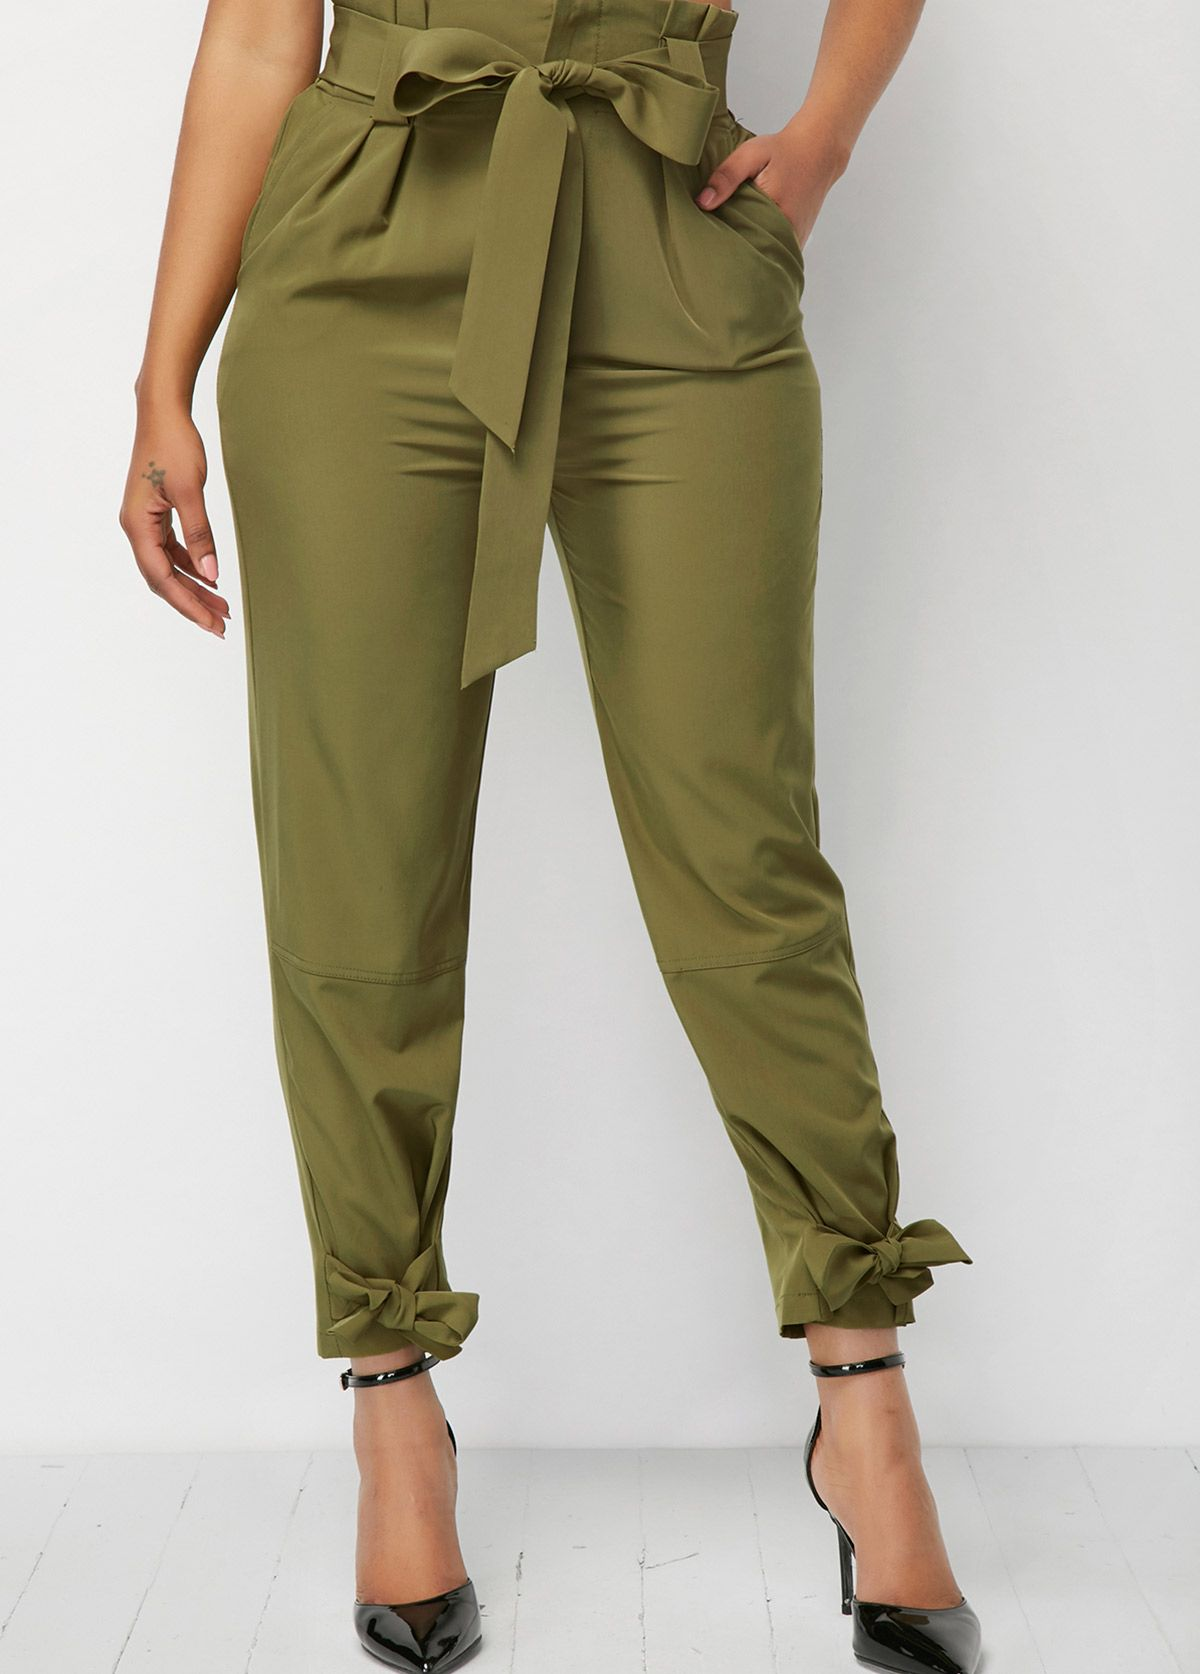 375a26151f9 Trendy womens Bottoms on sale. Army Green Belted High Waist Tie Cuff Pants